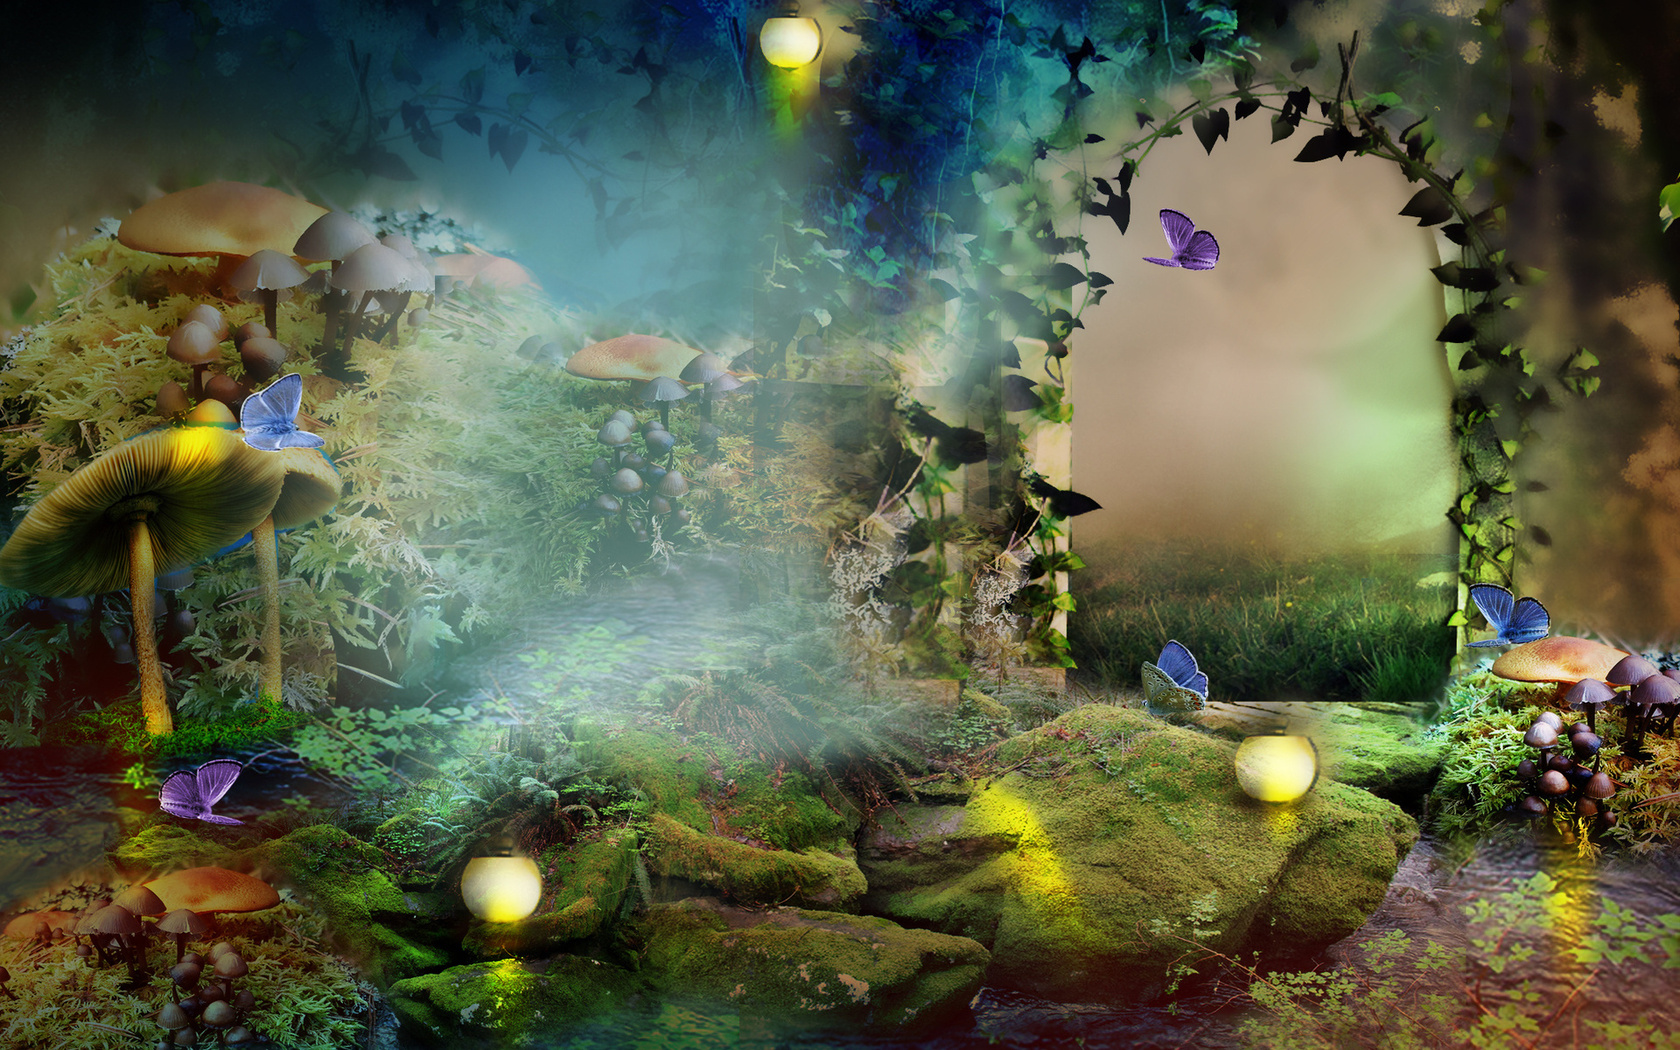 39+ Enchanted Forest Wallpapers on WallpaperSafari